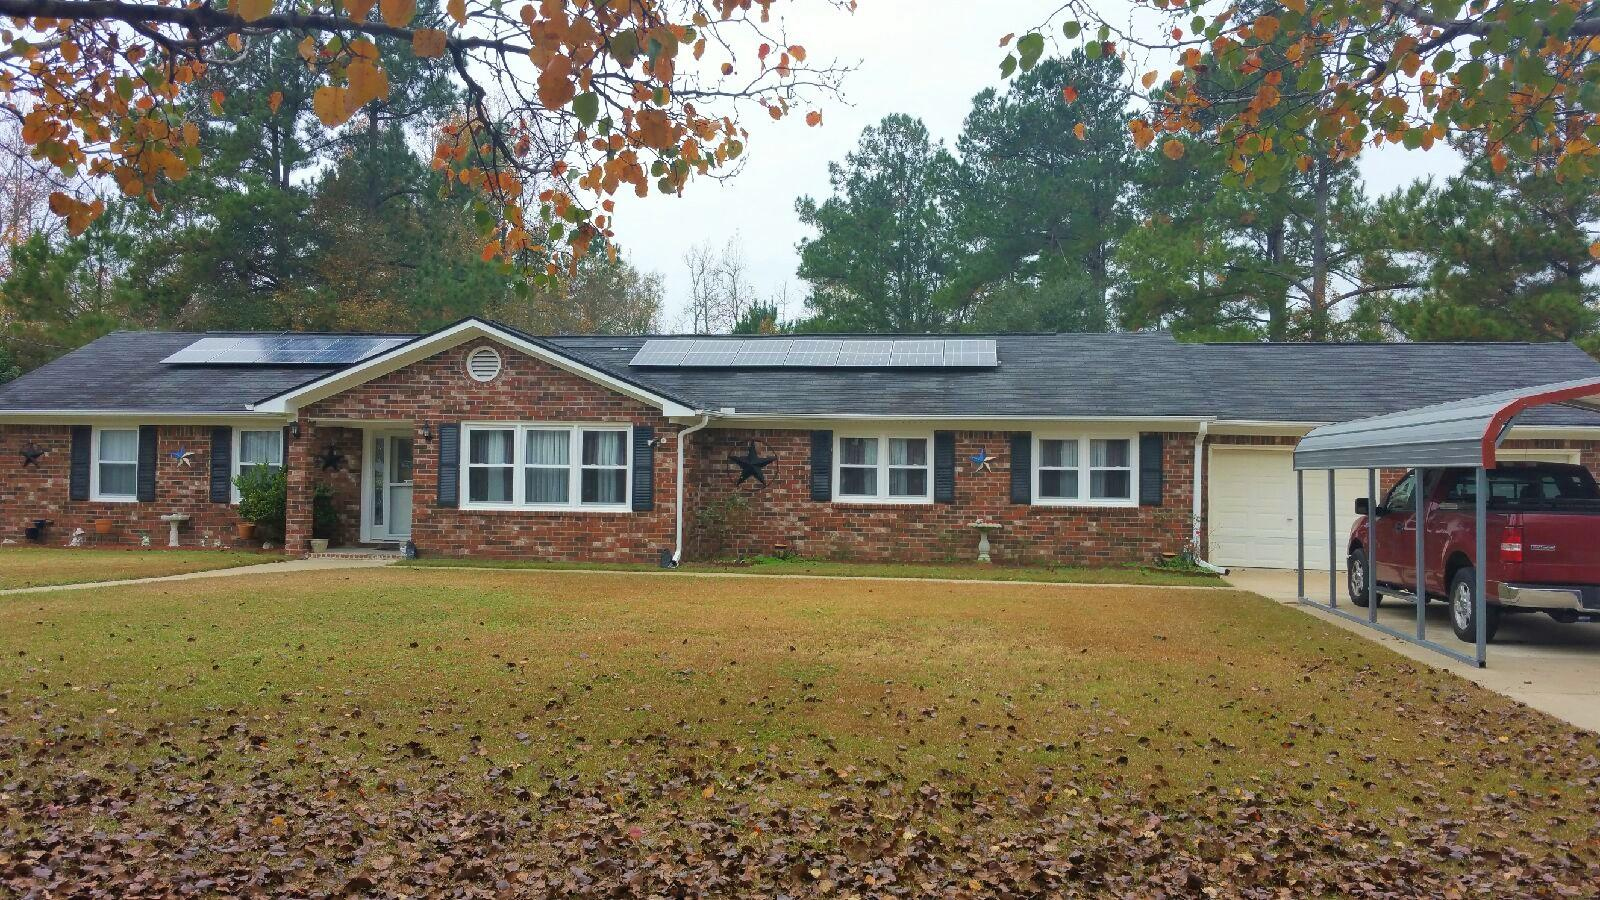 Photo of 1234 County Line Rd, Cross, SC 29436